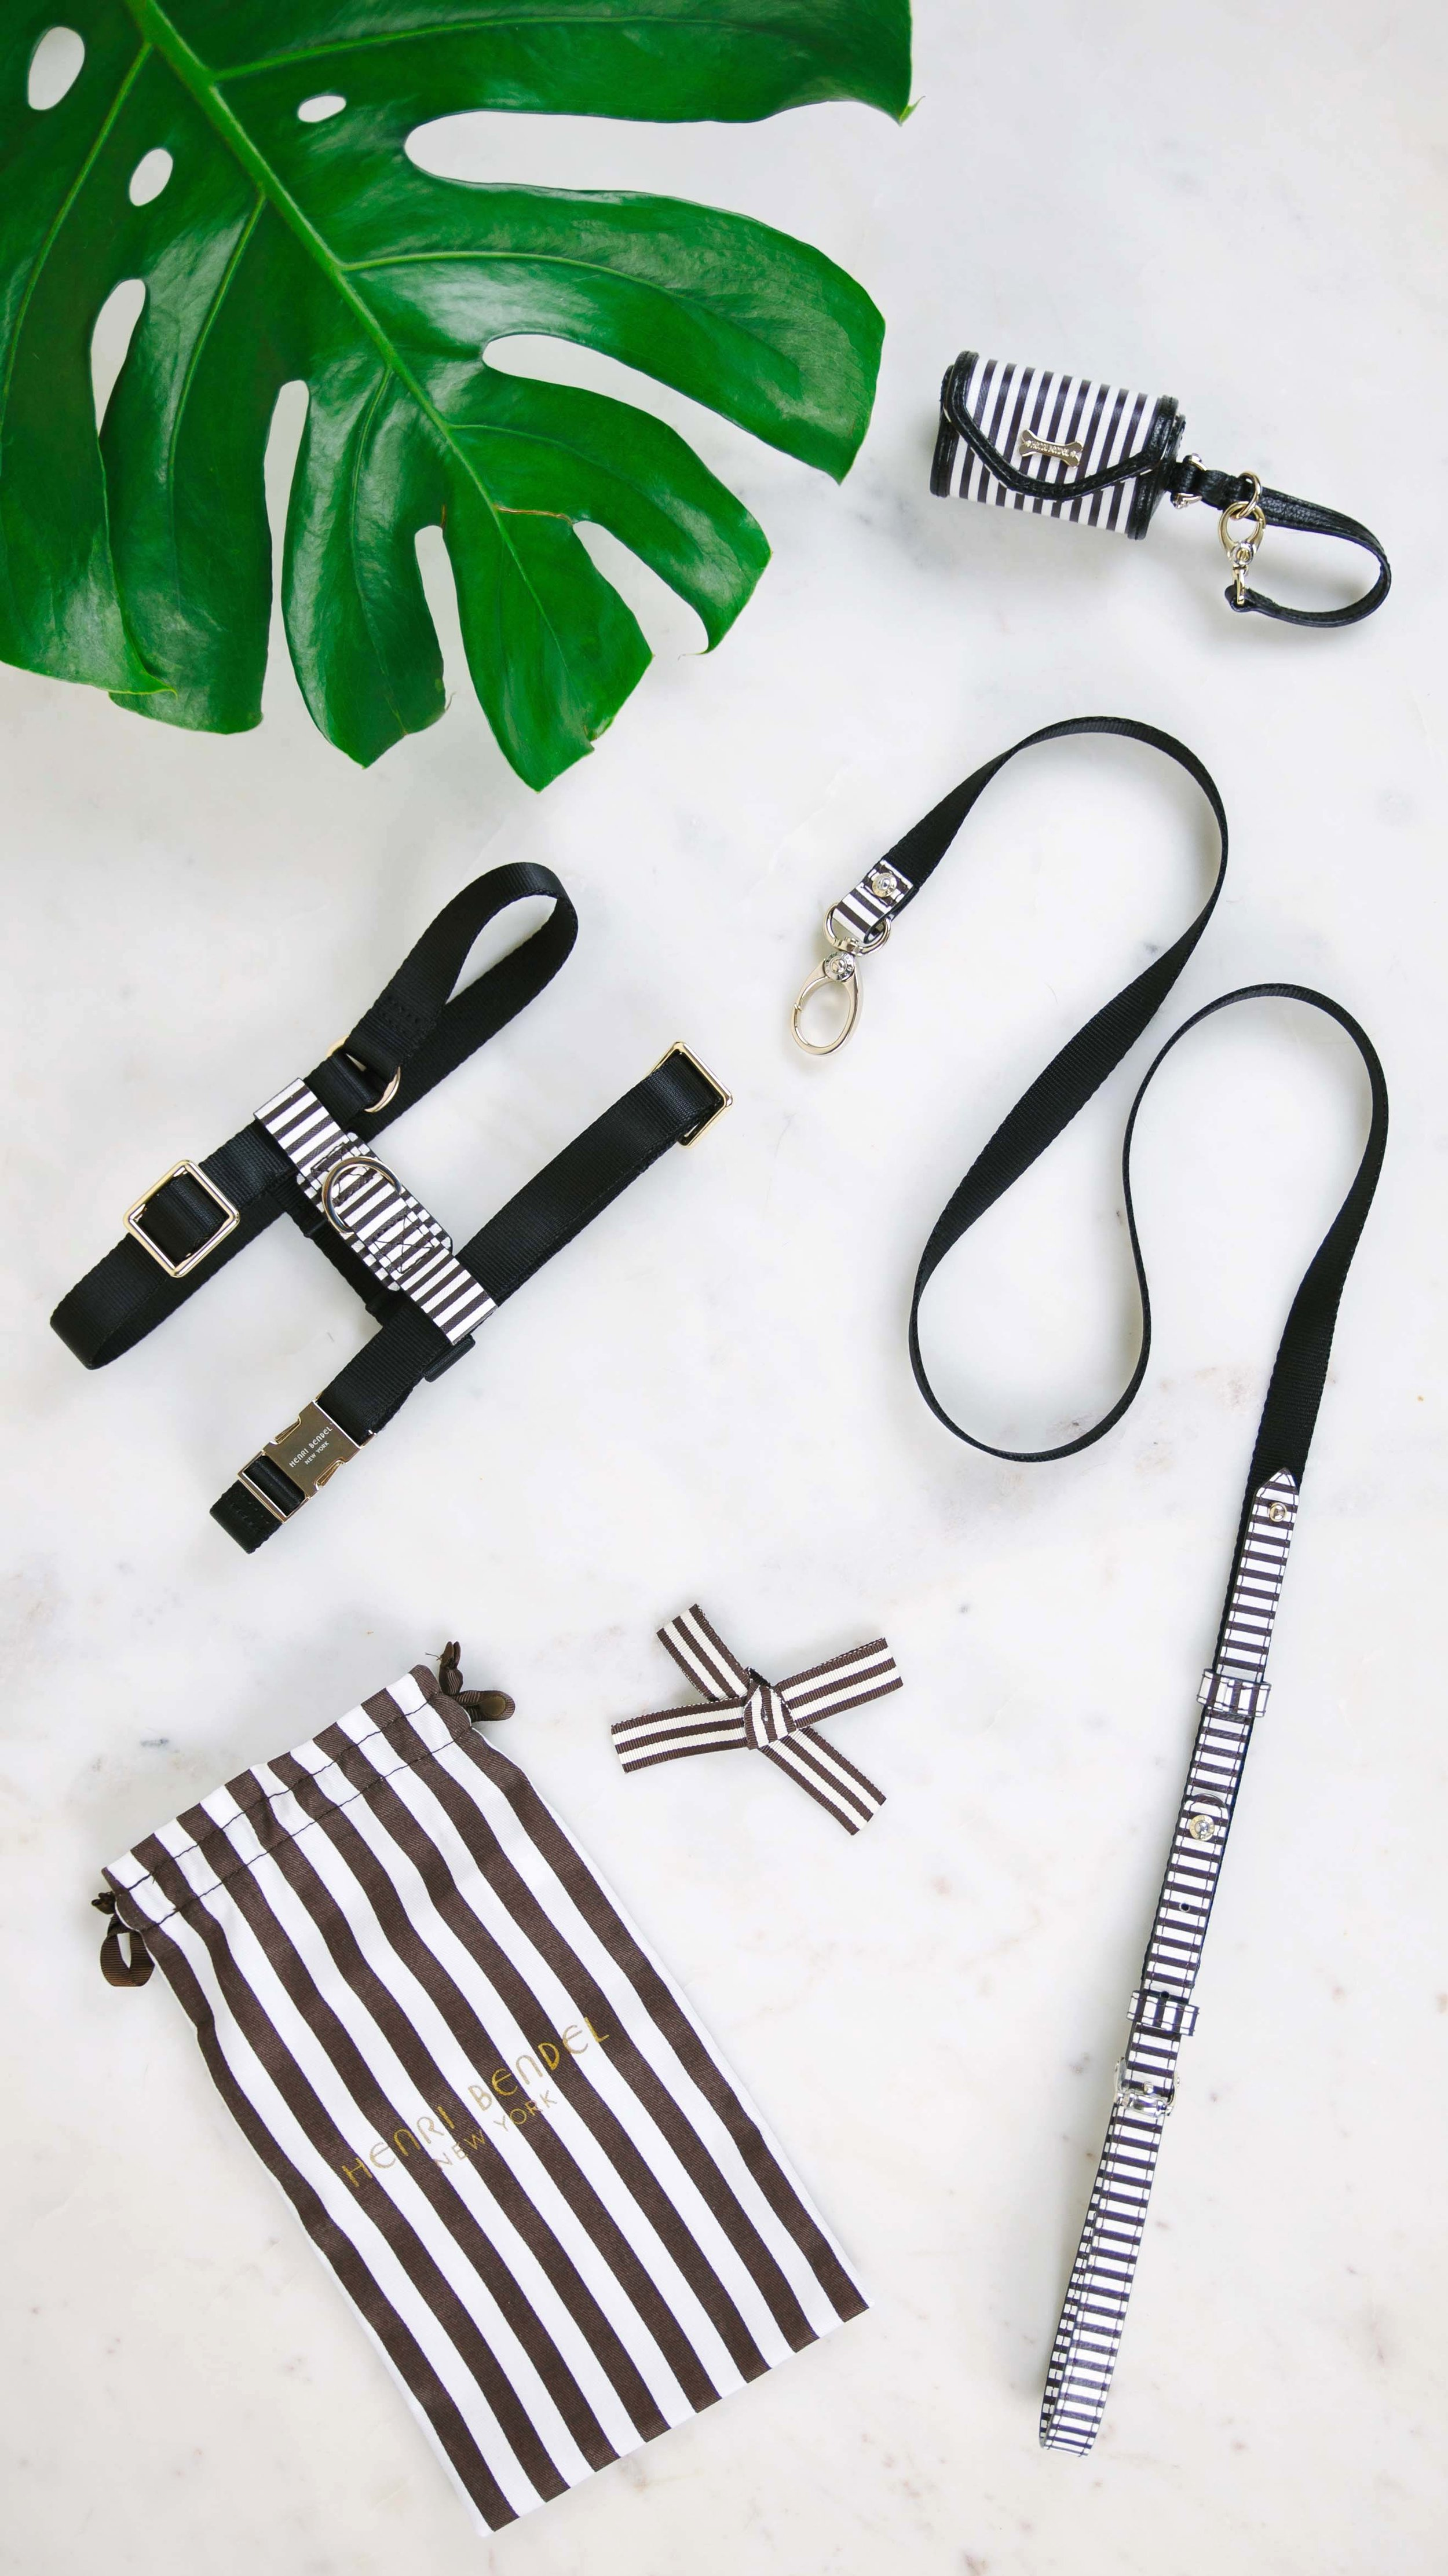 Dog Accessories from Henri Bendel on The Dapple, the lifestyle blog from The Ween and The Queen